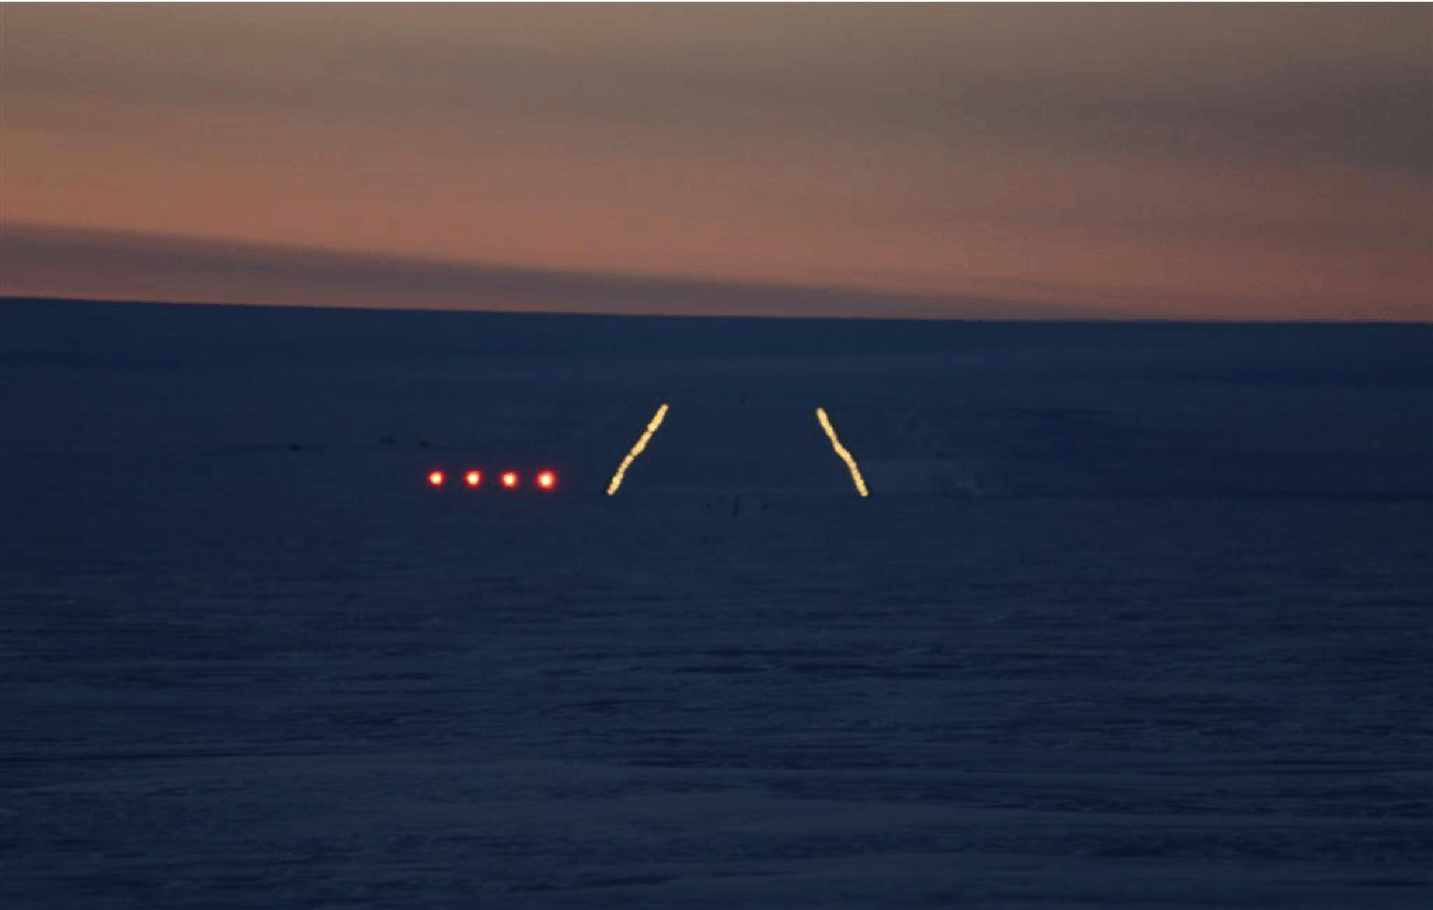 View of the PAPI and runway lighting from the flight deck of an approaching aircraft